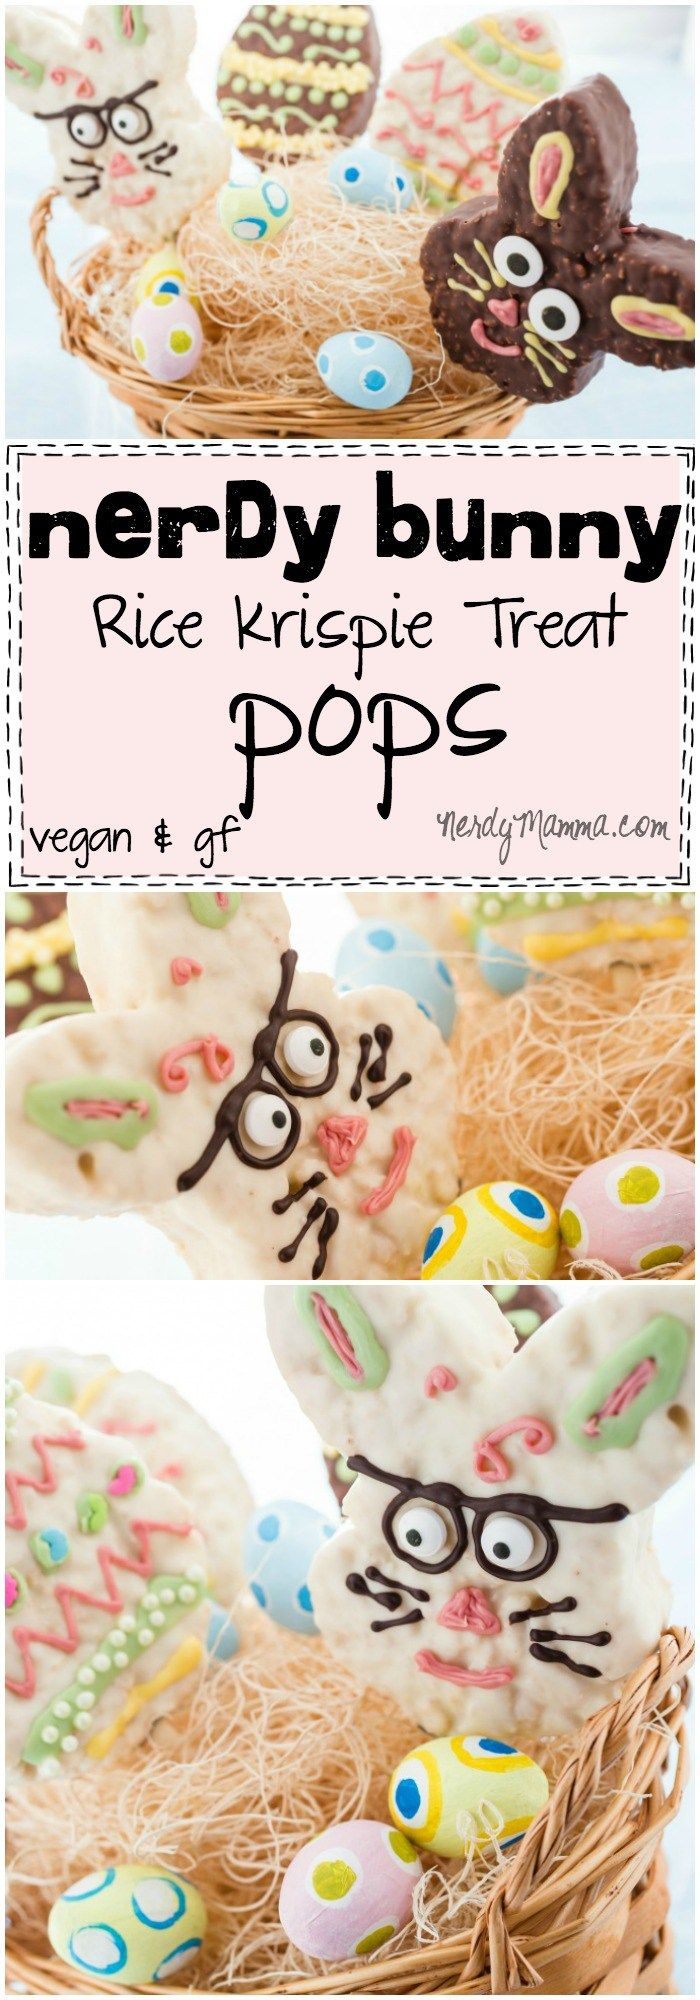 This is such a cute Easter treat idea! Nerdy Bunny Rice Krispie Treat Pops are so adorable...and easy! I love it. (and they're gluten-free and vegan!)